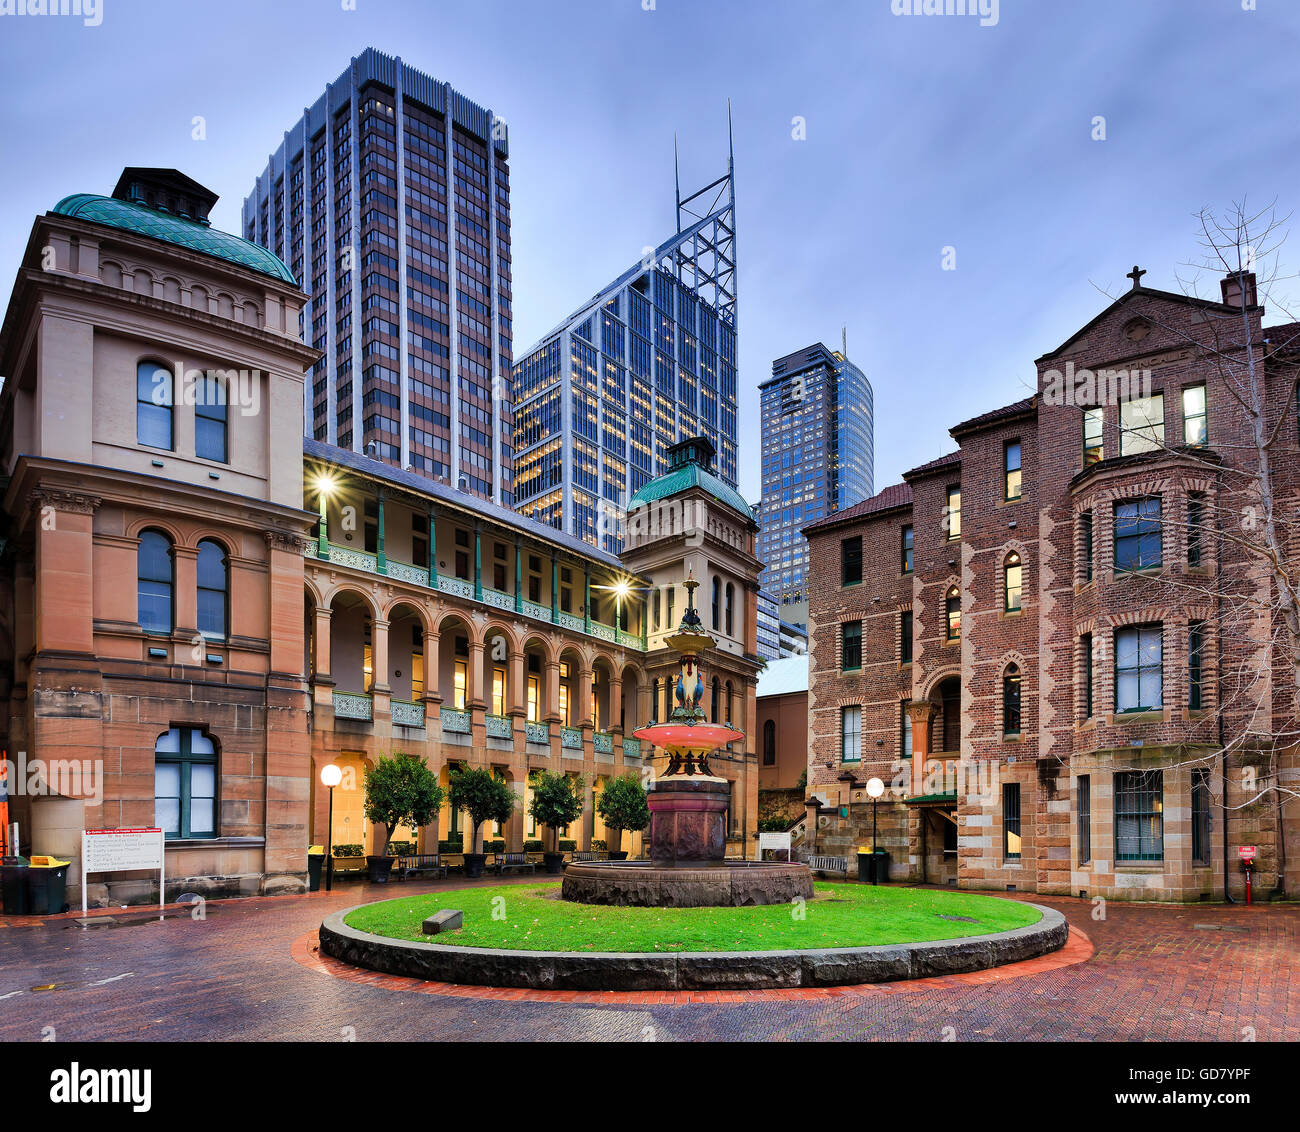 Stone facades of Sydney royal eye hospital wings around decorated fountain agaist modern office skyscraper towers. - Stock Image